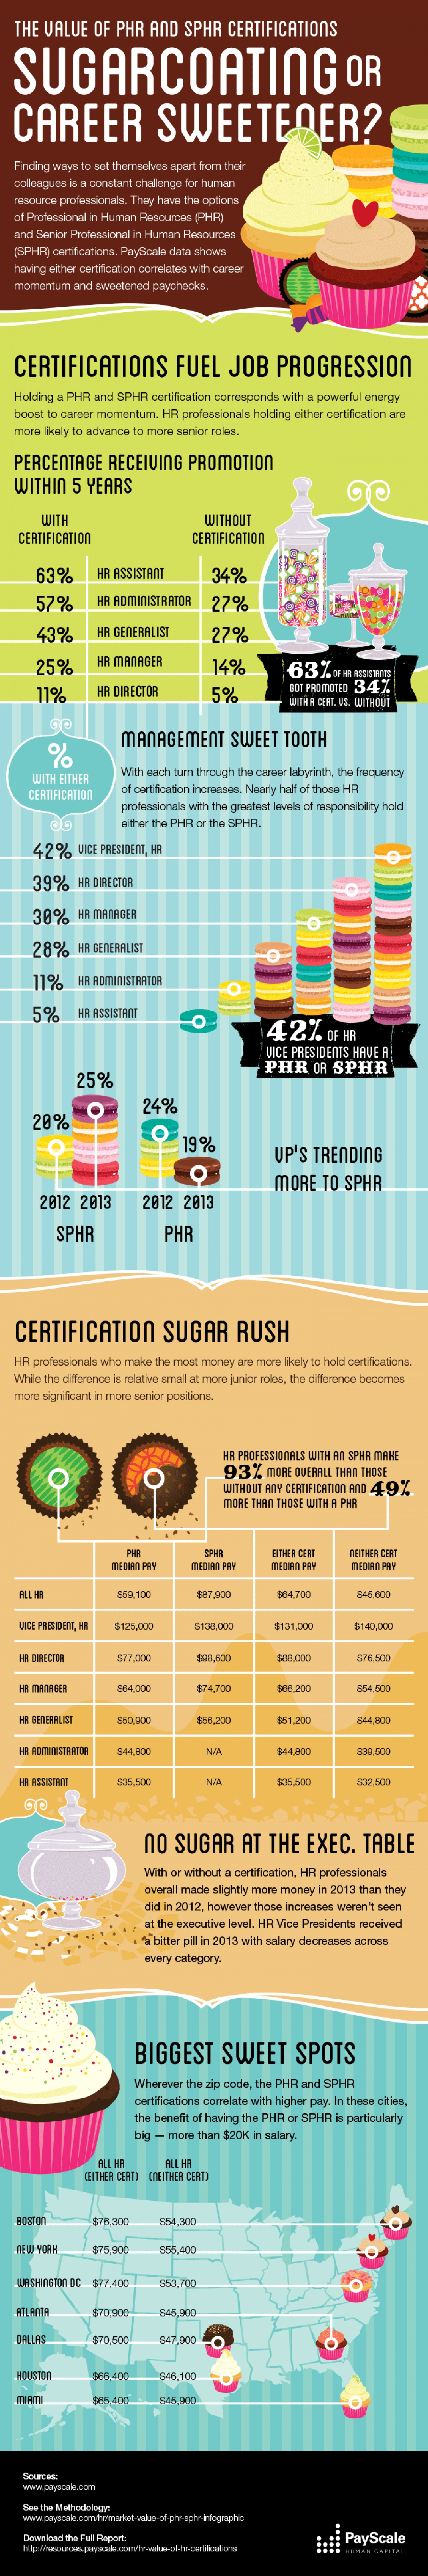 The Value Of Phr And Sphr Certifications Sugarcoating Or Career